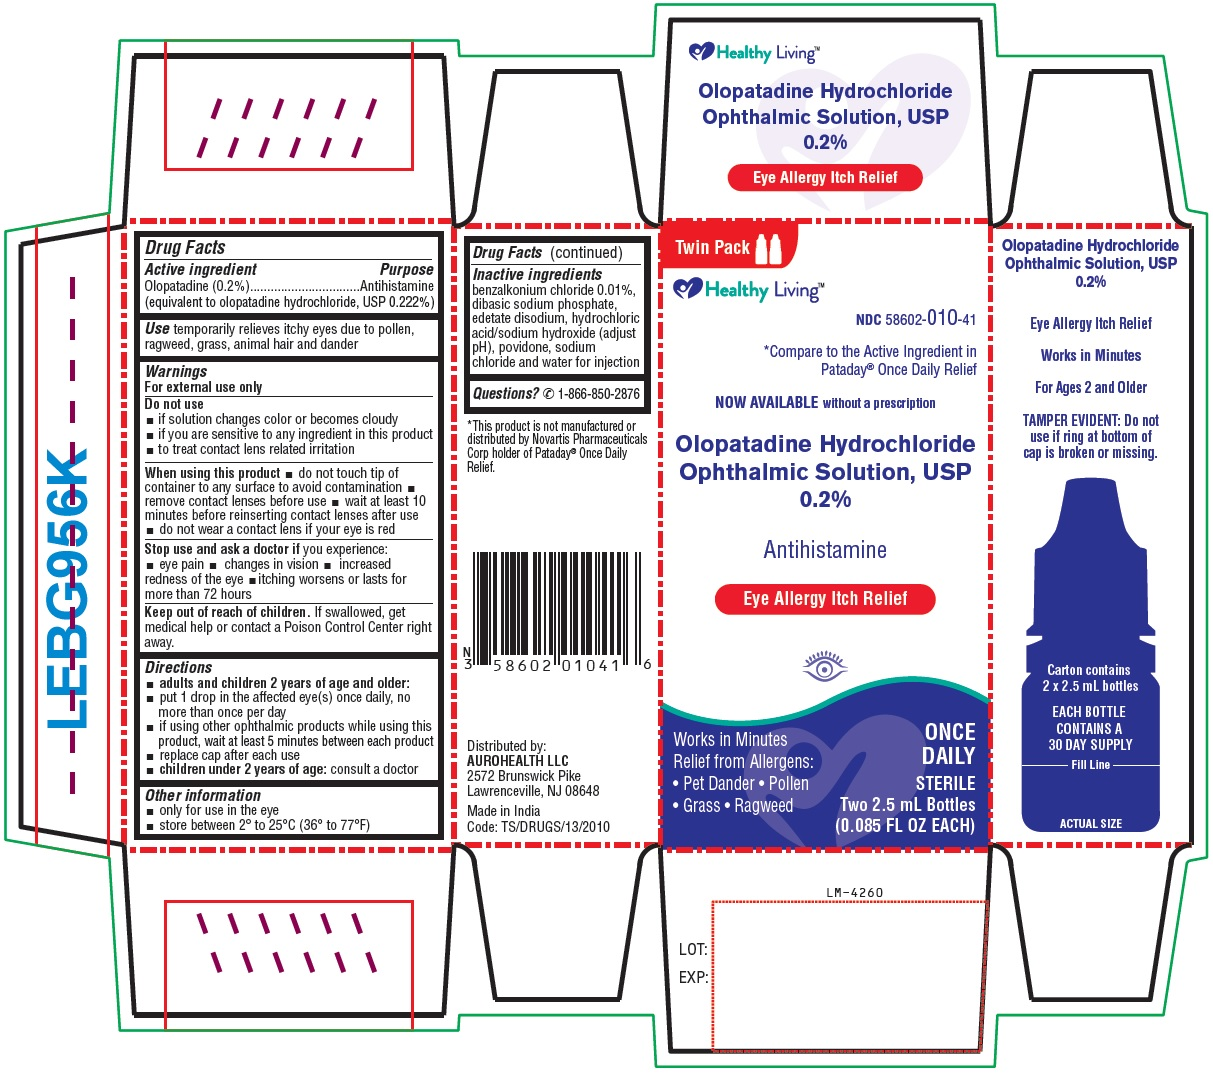 PACKAGE LABEL-PRINCIPAL DISPLAY PANEL-0.2% (2.5 mL Container Carton) Twin Pack